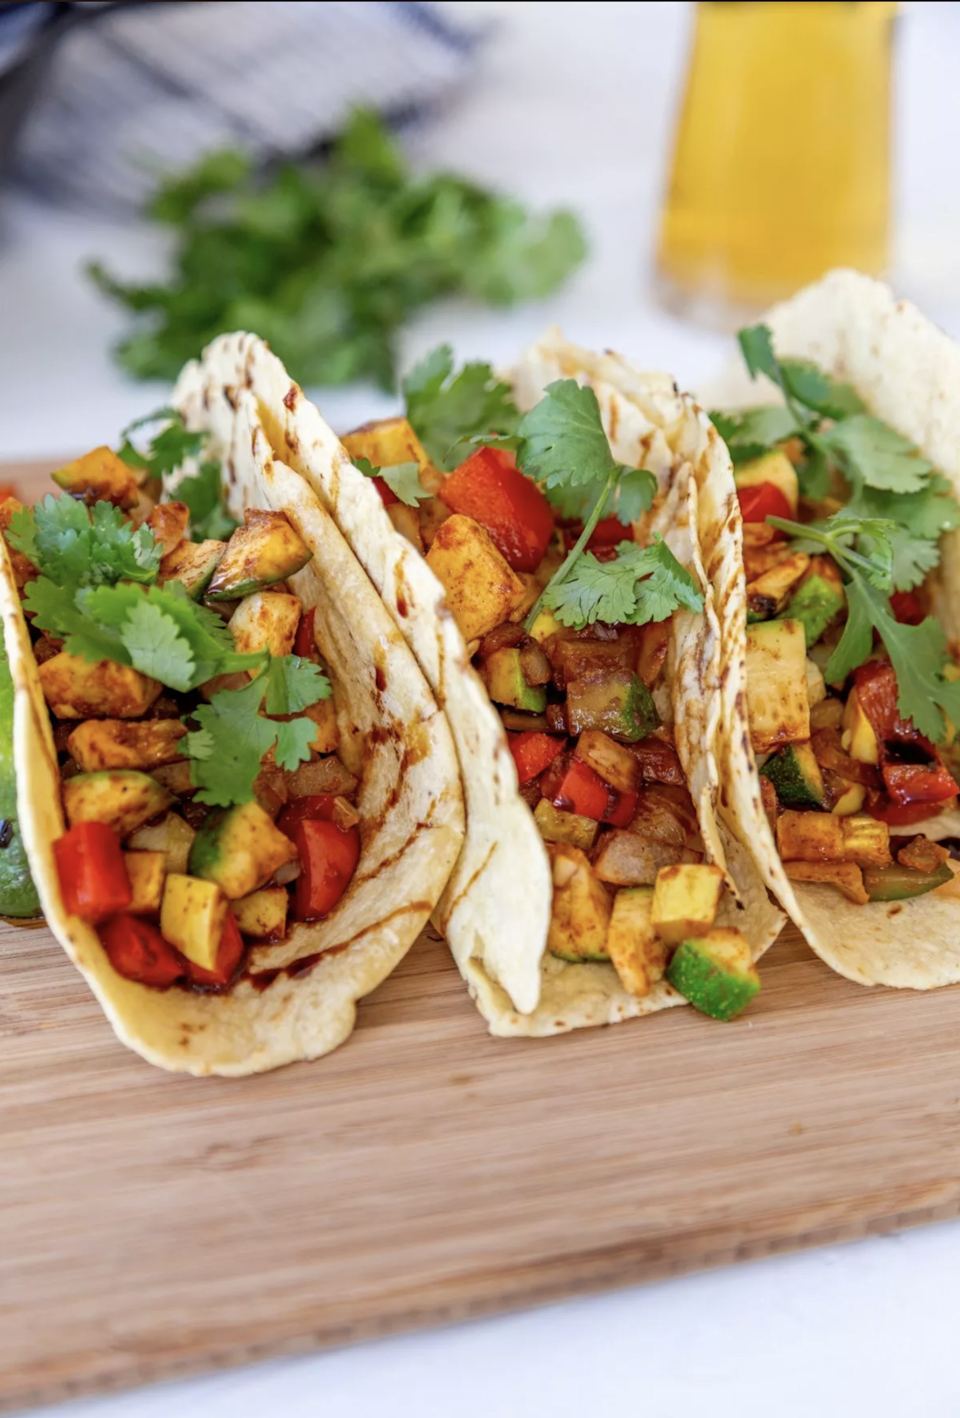 """<p>Balsamic glaze may not scream """"taco ingredient,"""" but its sweet and tangy taste balances out the spicy veggies nicely.</p> <p>Get the recipe <a href=""""https://www.veganosity.com/veggie-tacos-with-balsamic-glaze-vegan/"""" rel=""""nofollow noopener"""" target=""""_blank"""" data-ylk=""""slk:here"""" class=""""link rapid-noclick-resp"""">here</a>.</p>"""